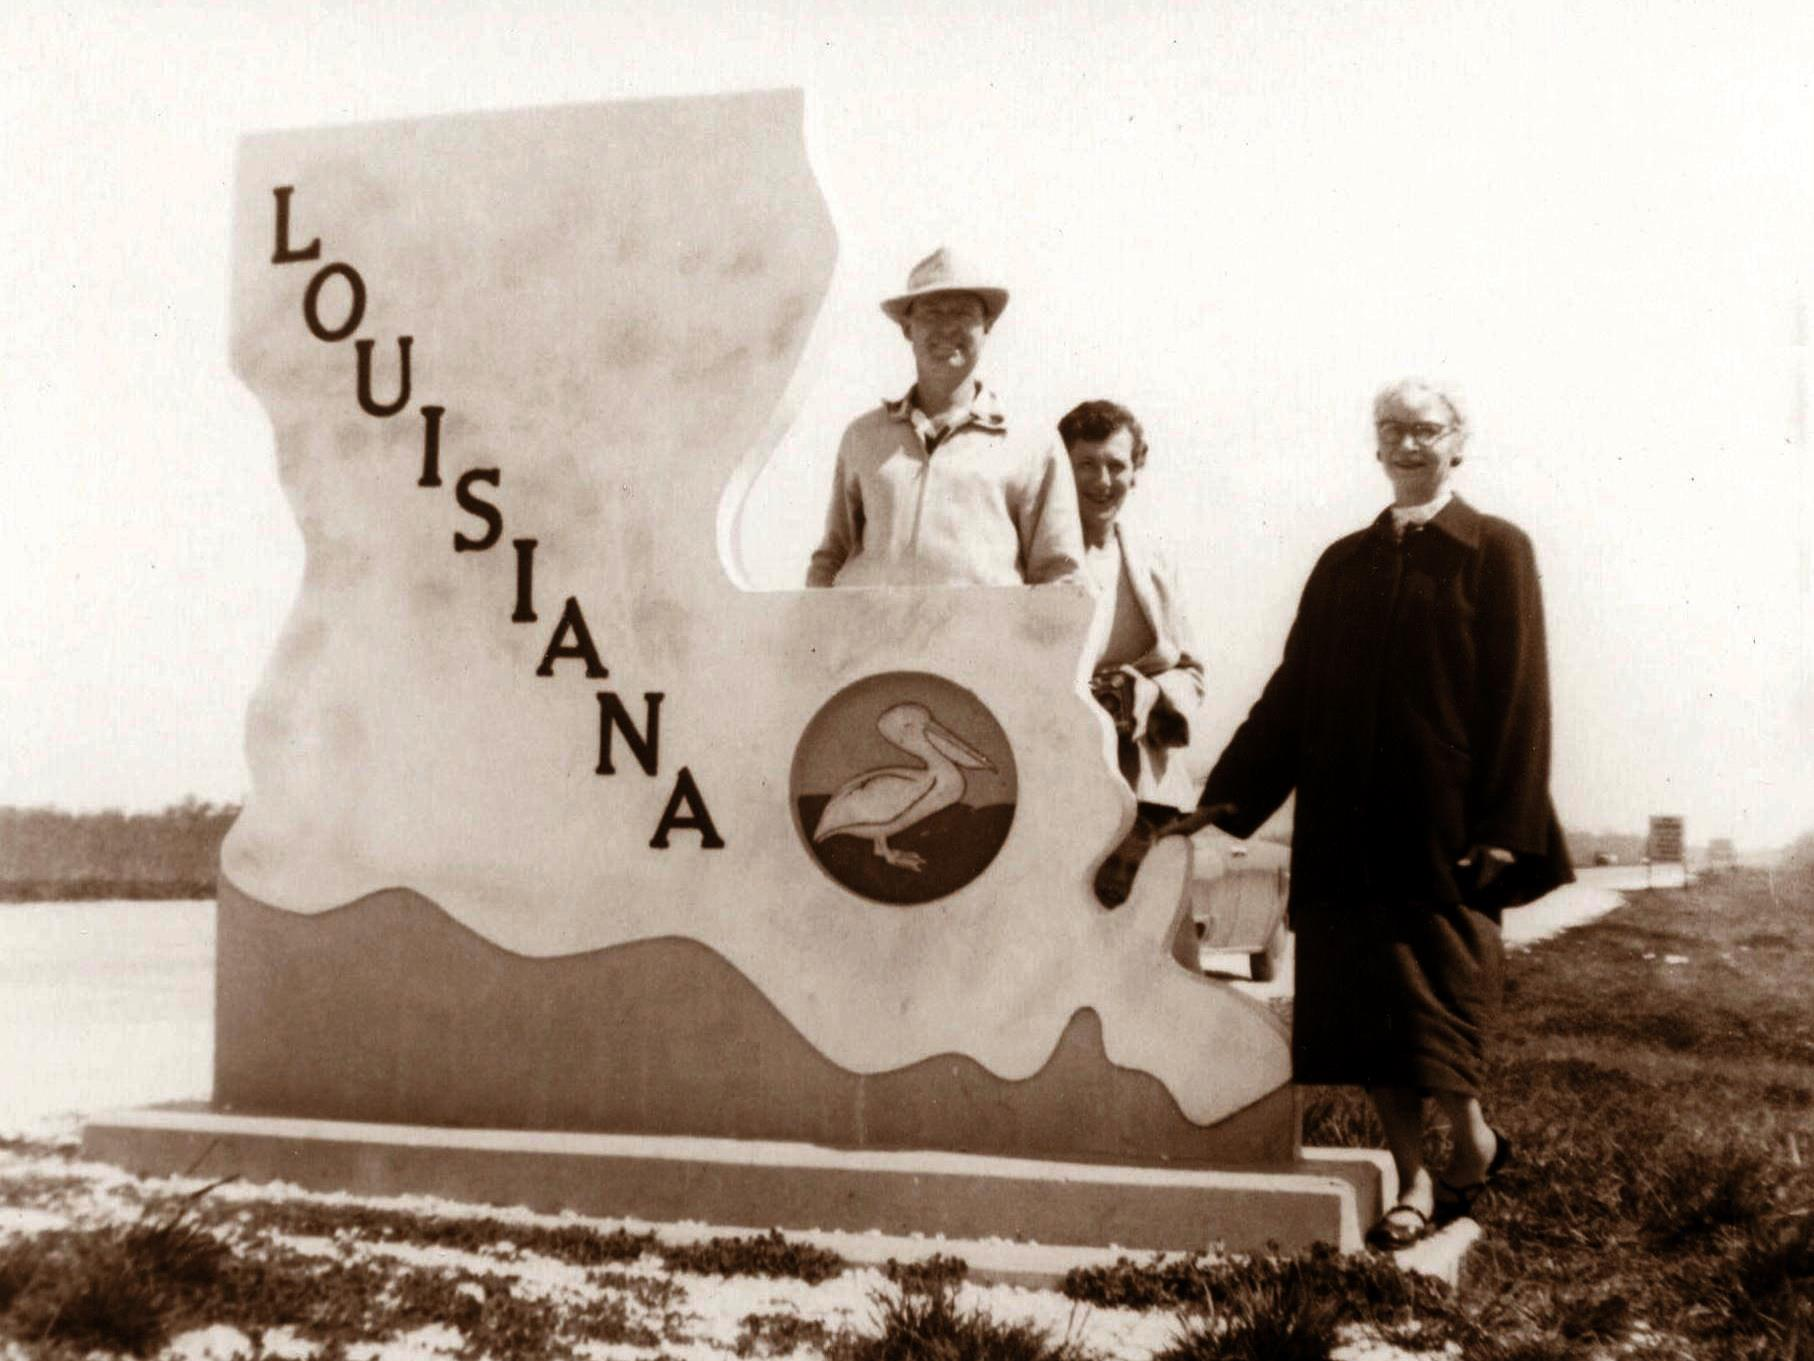 On the LA State line, March 1956